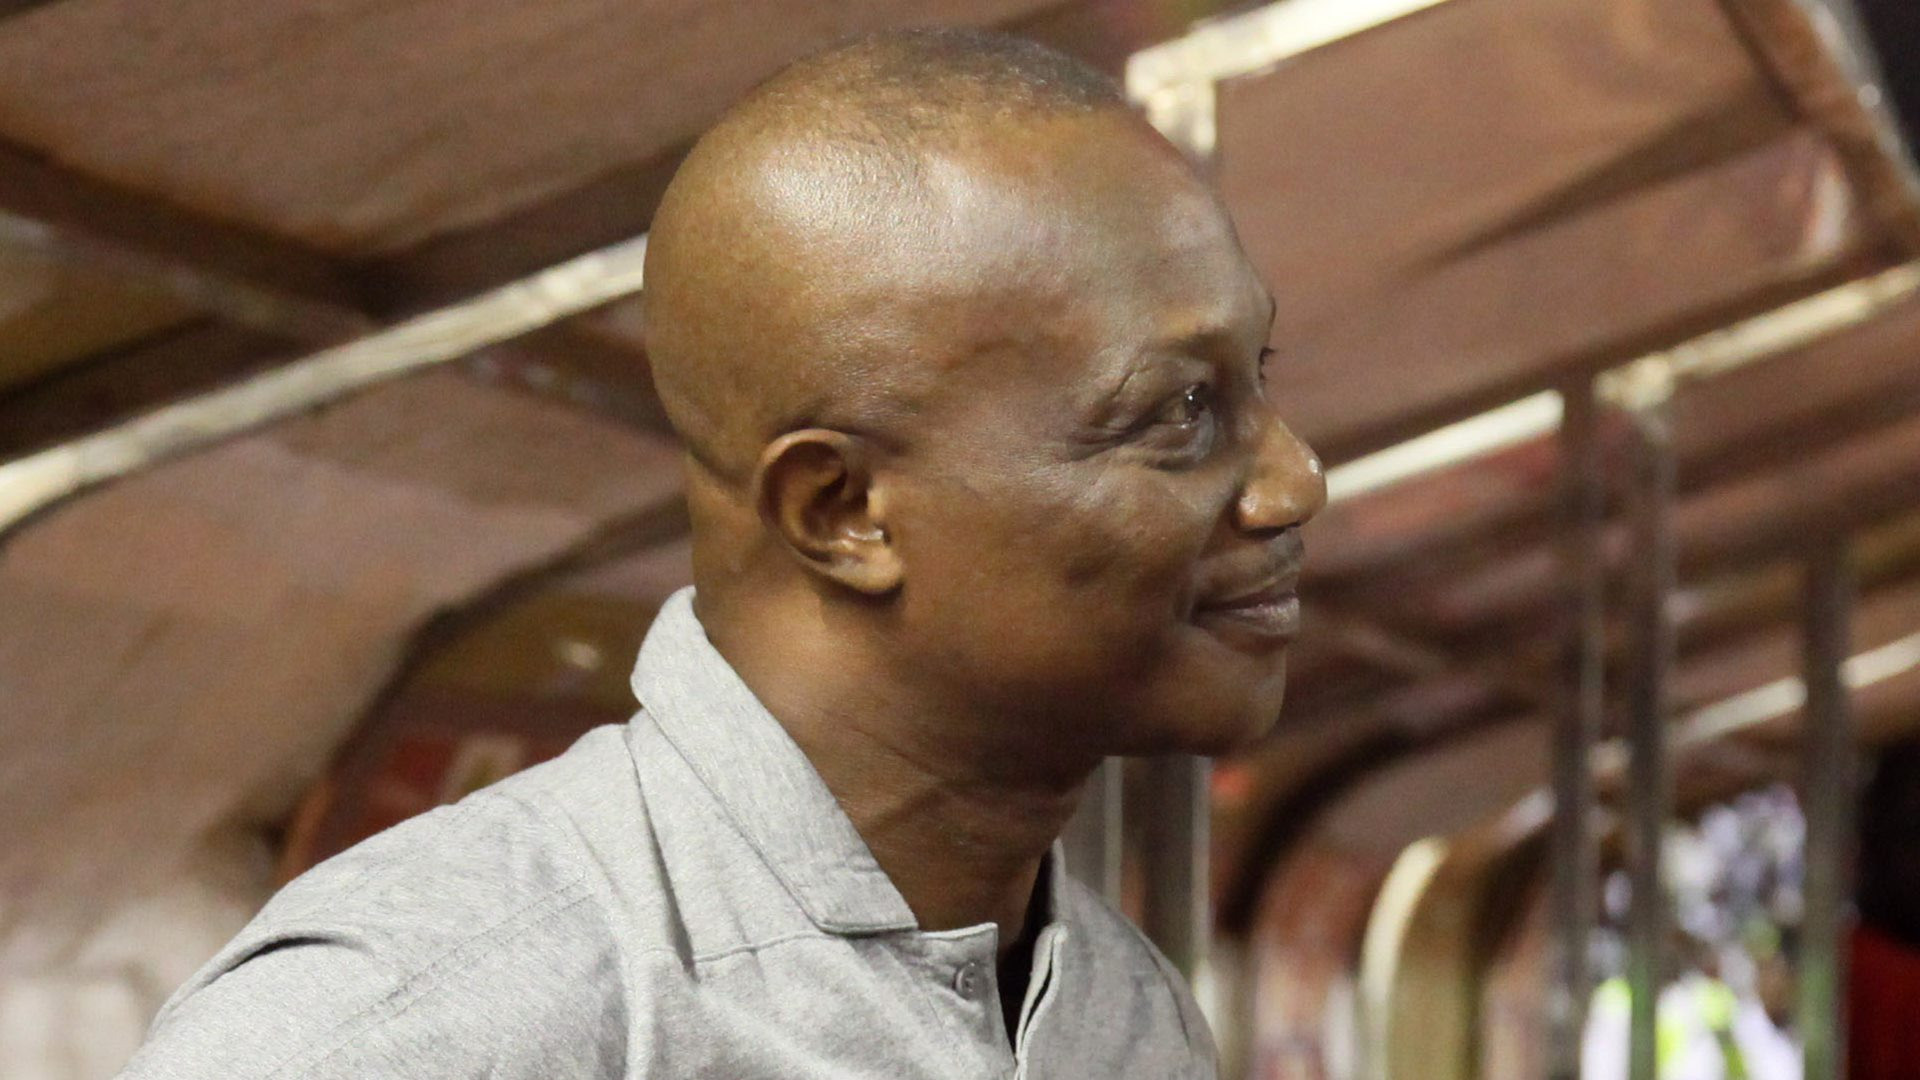 Afcon 2021 qualifiers: Ghana coach Kwasi Appiah sheds light on game plan in South Africa win